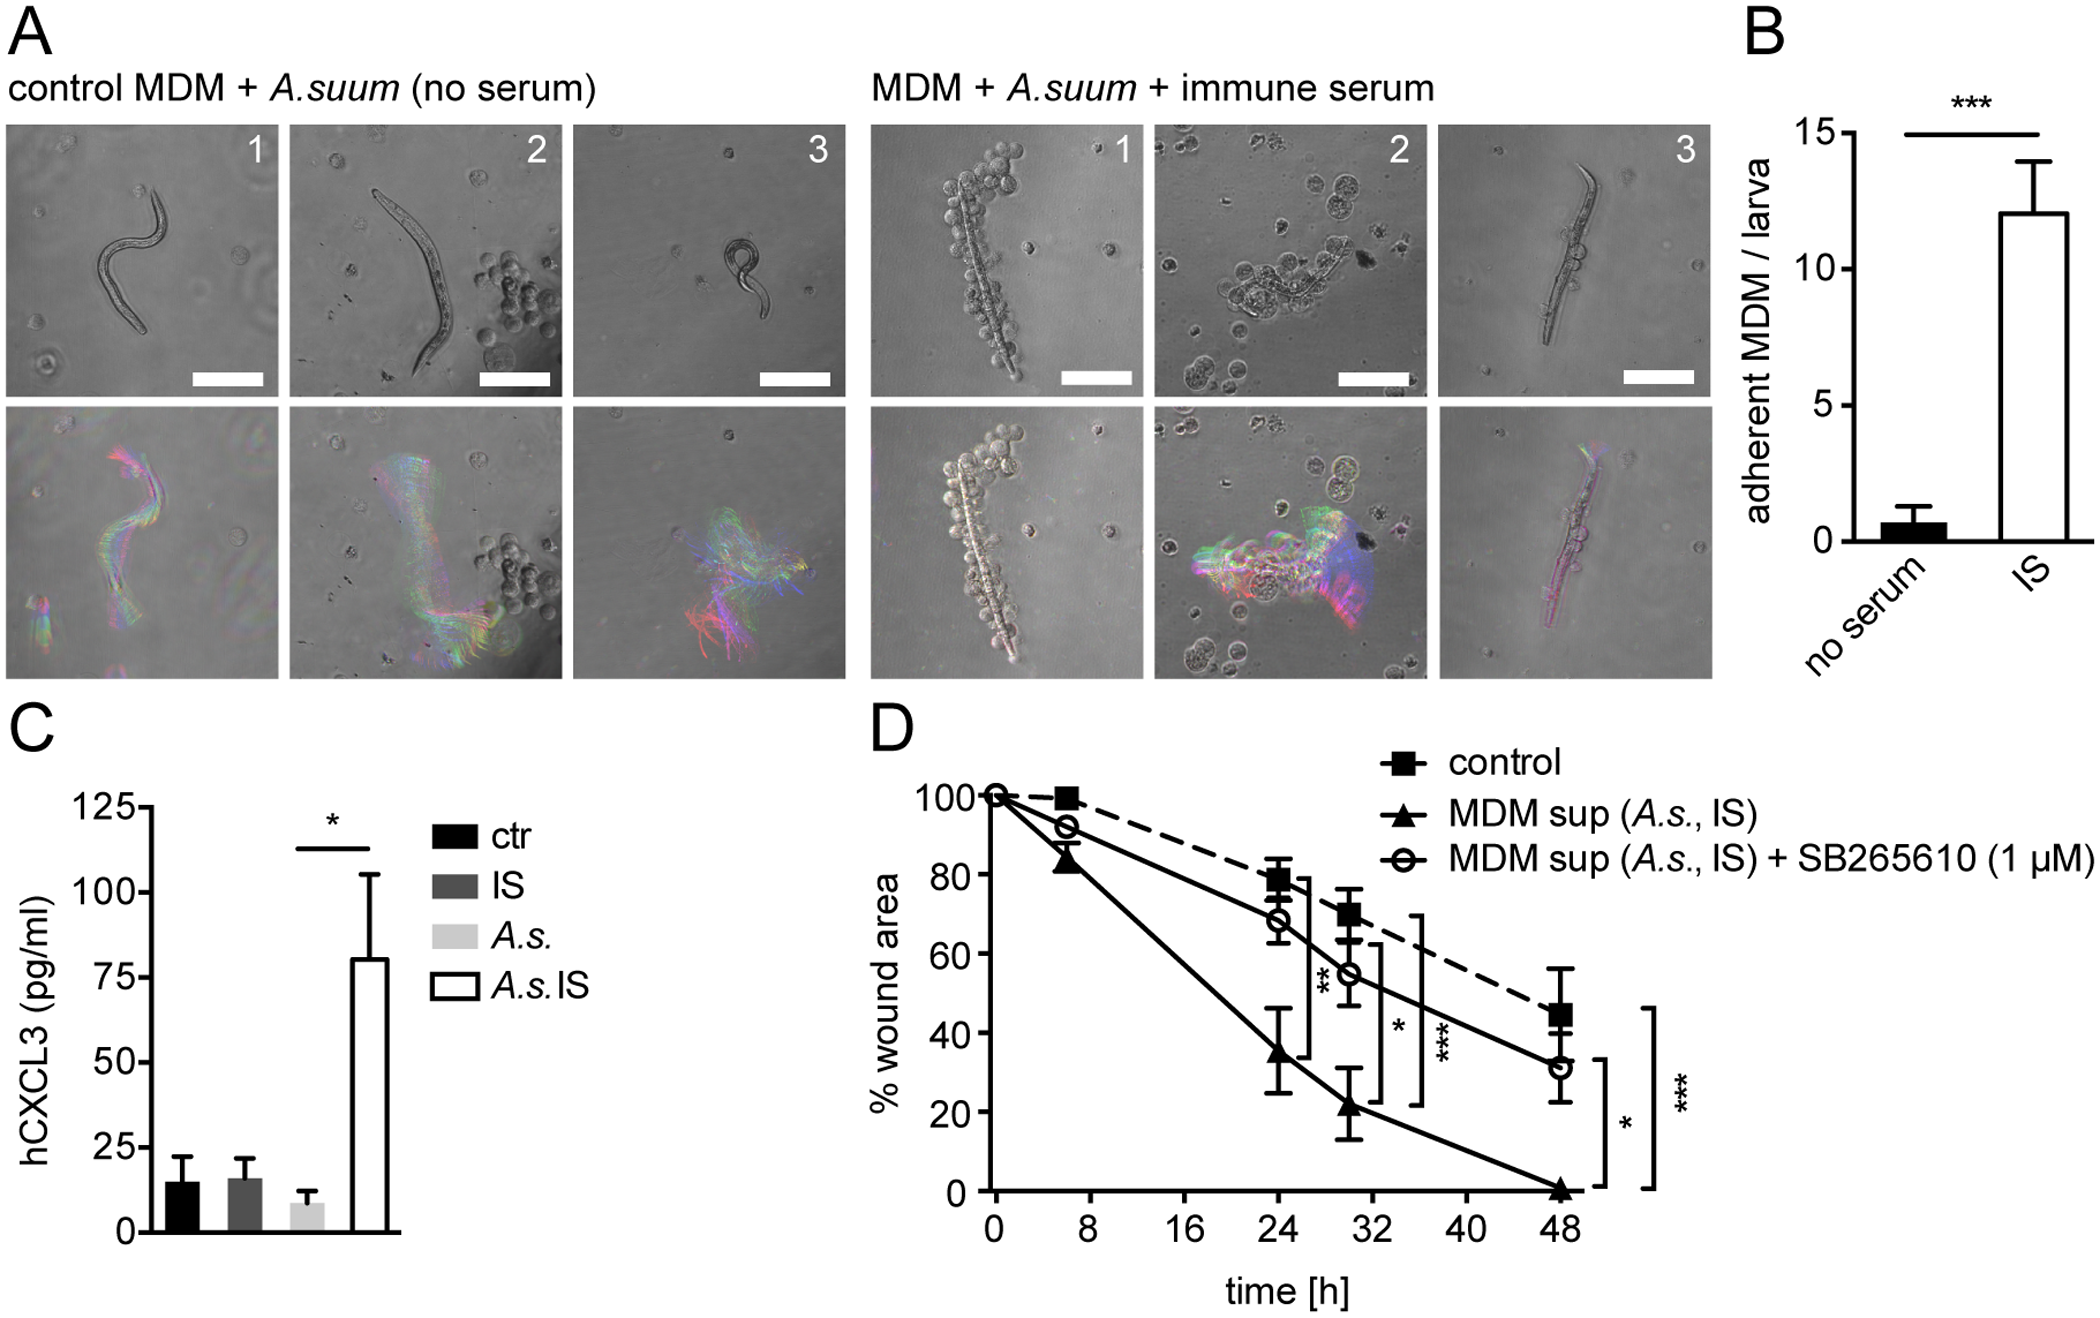 Conditioned media from <i>A</i>. <i>suum</i>-immune serum-activated MΦ promote in vitro scratch wound closure by human MF in a CXCR2 dependent fashion.